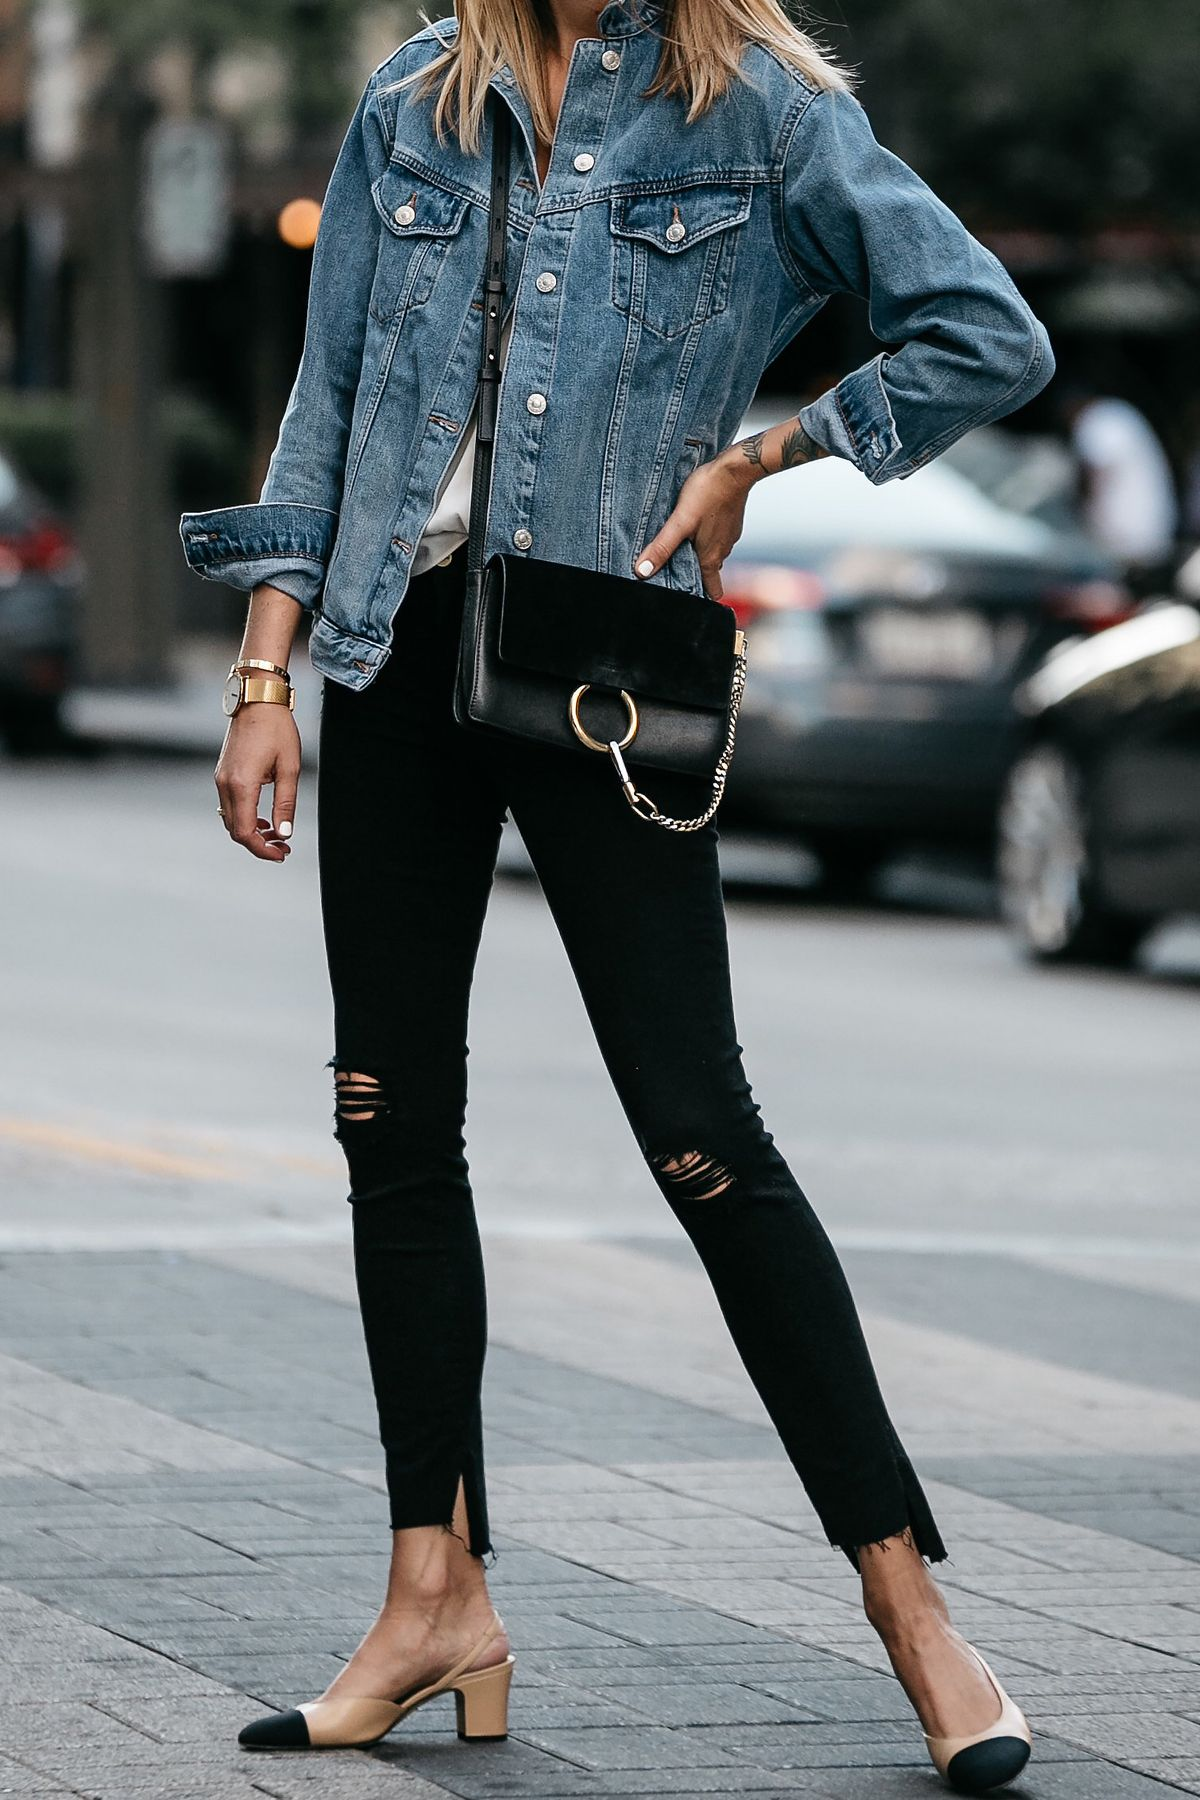 Denim Jacket Chloe Faye Handbag Frame Black Ripped